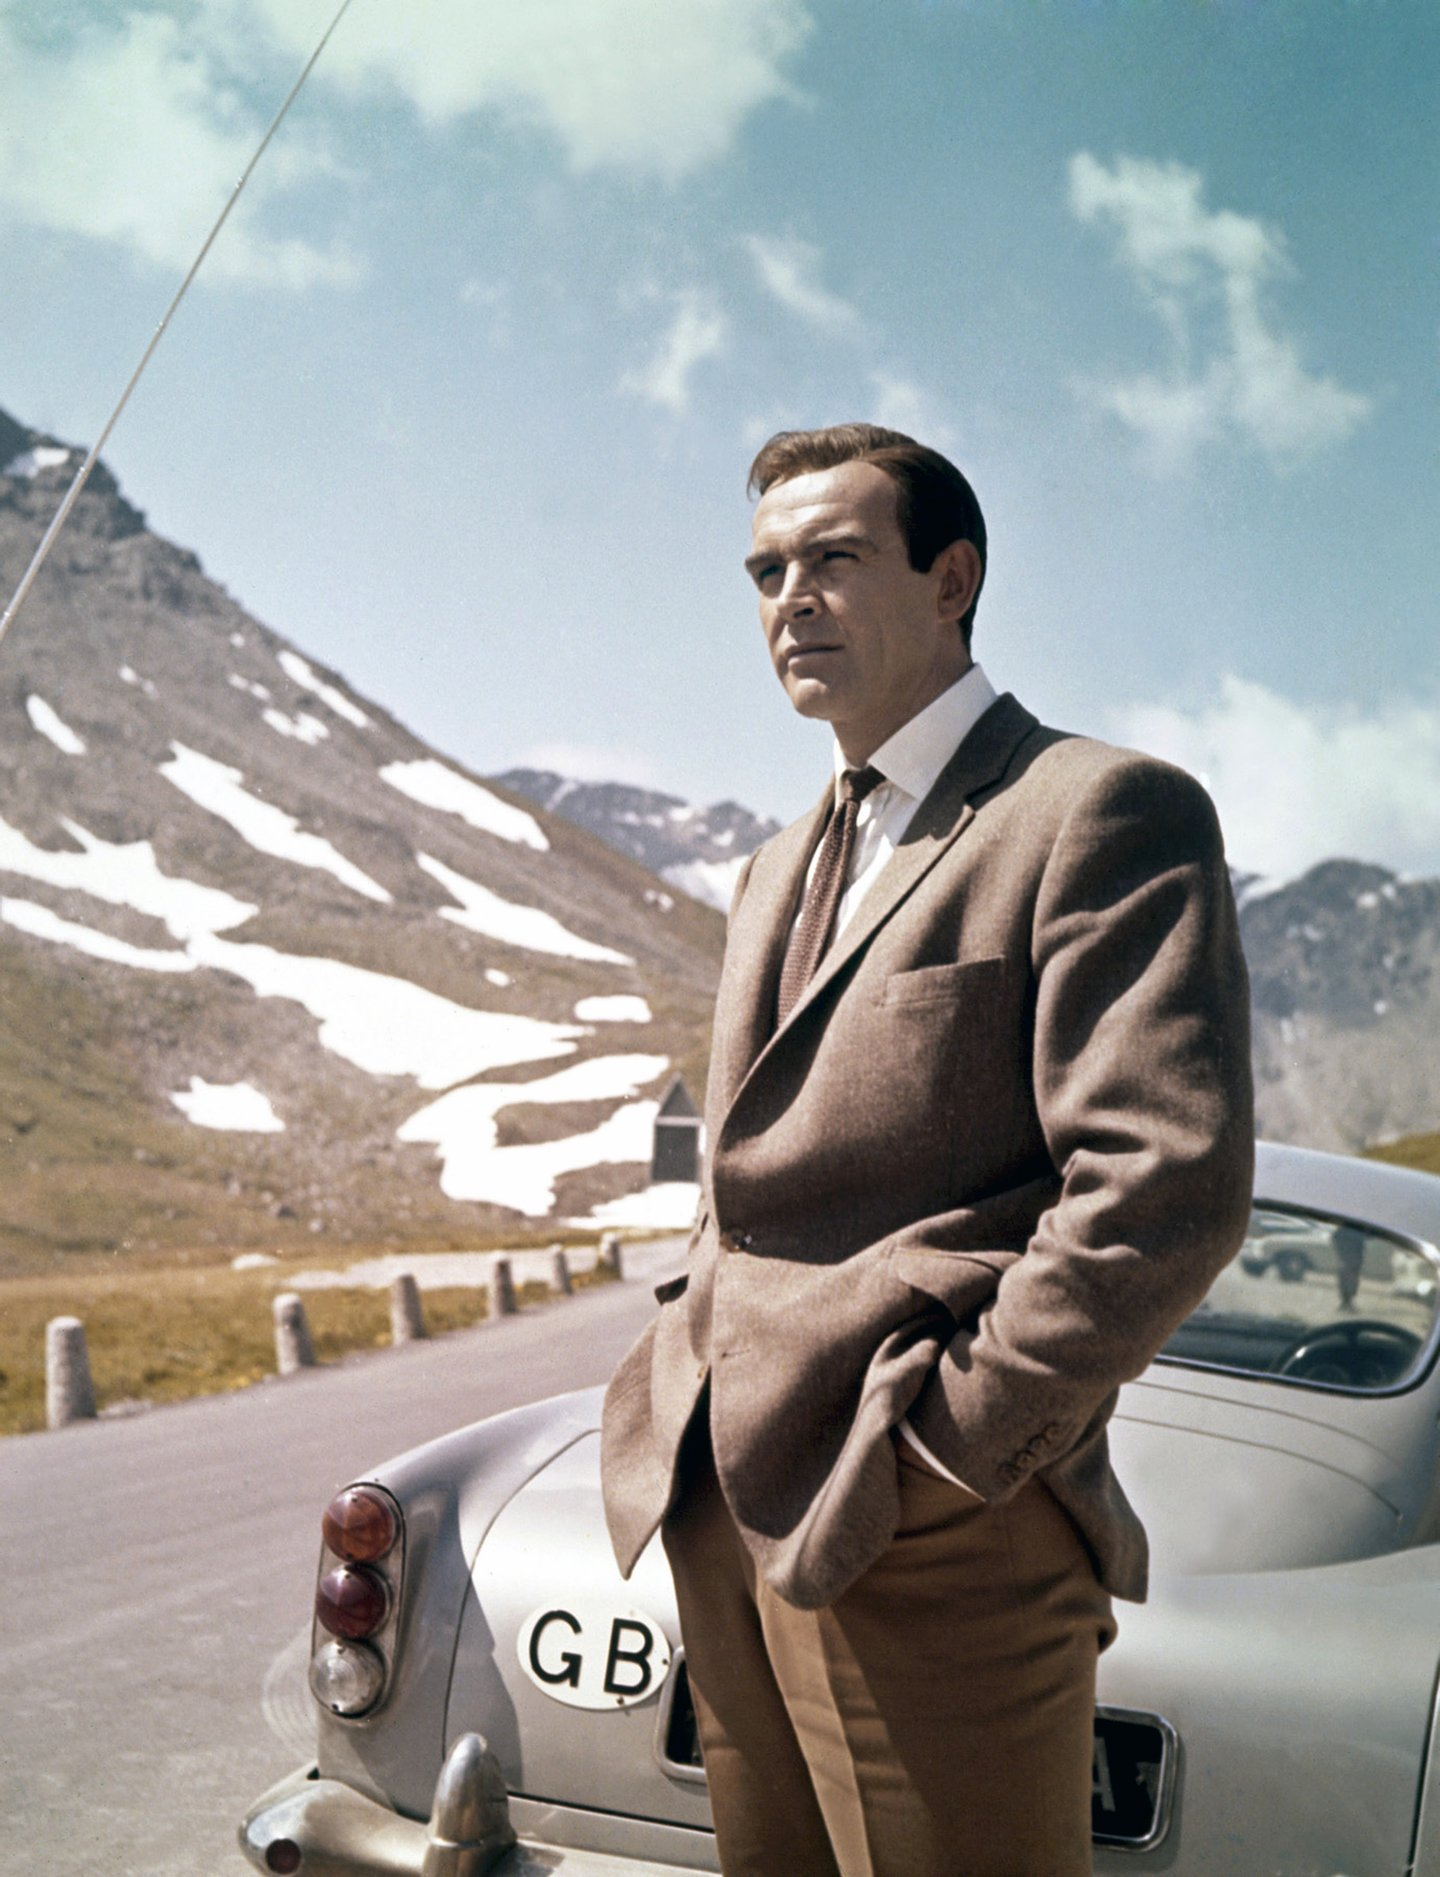 On the set of Goldfinger